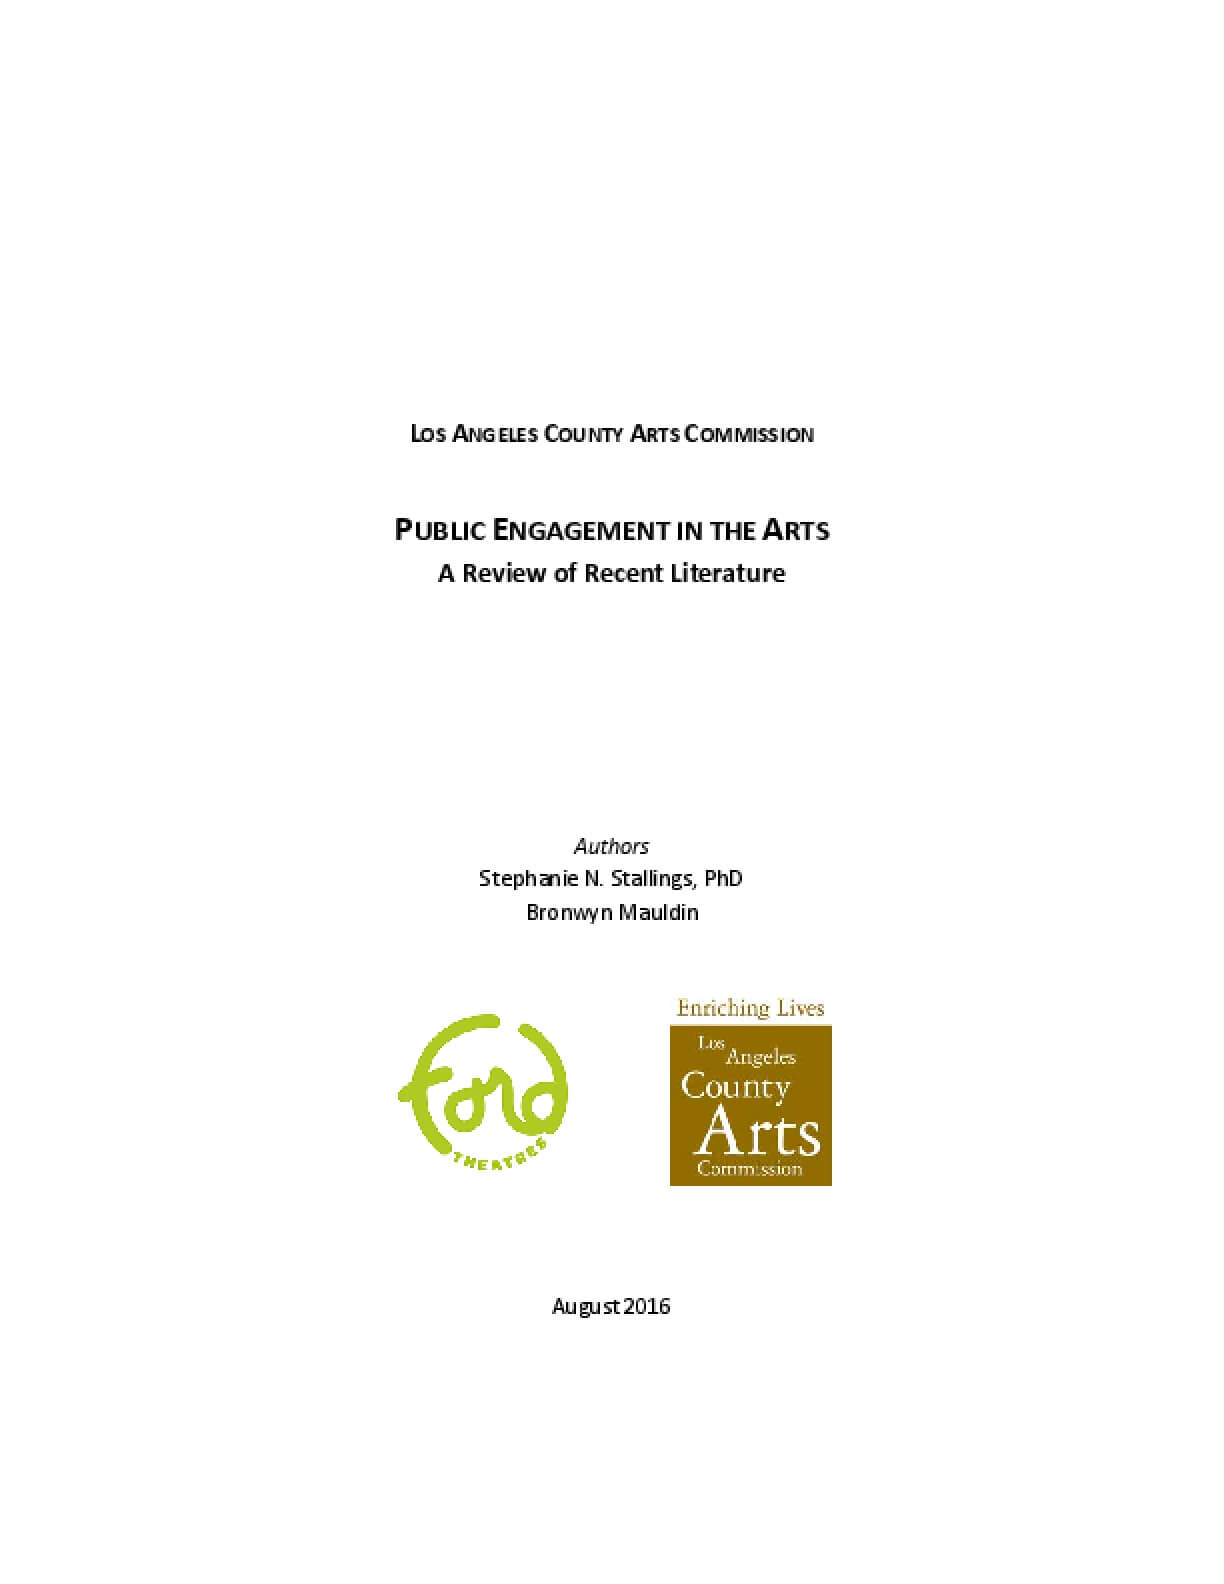 Los Angeles County Arts Commission: Public Engagement in the Arts - A Review of Recent Literature